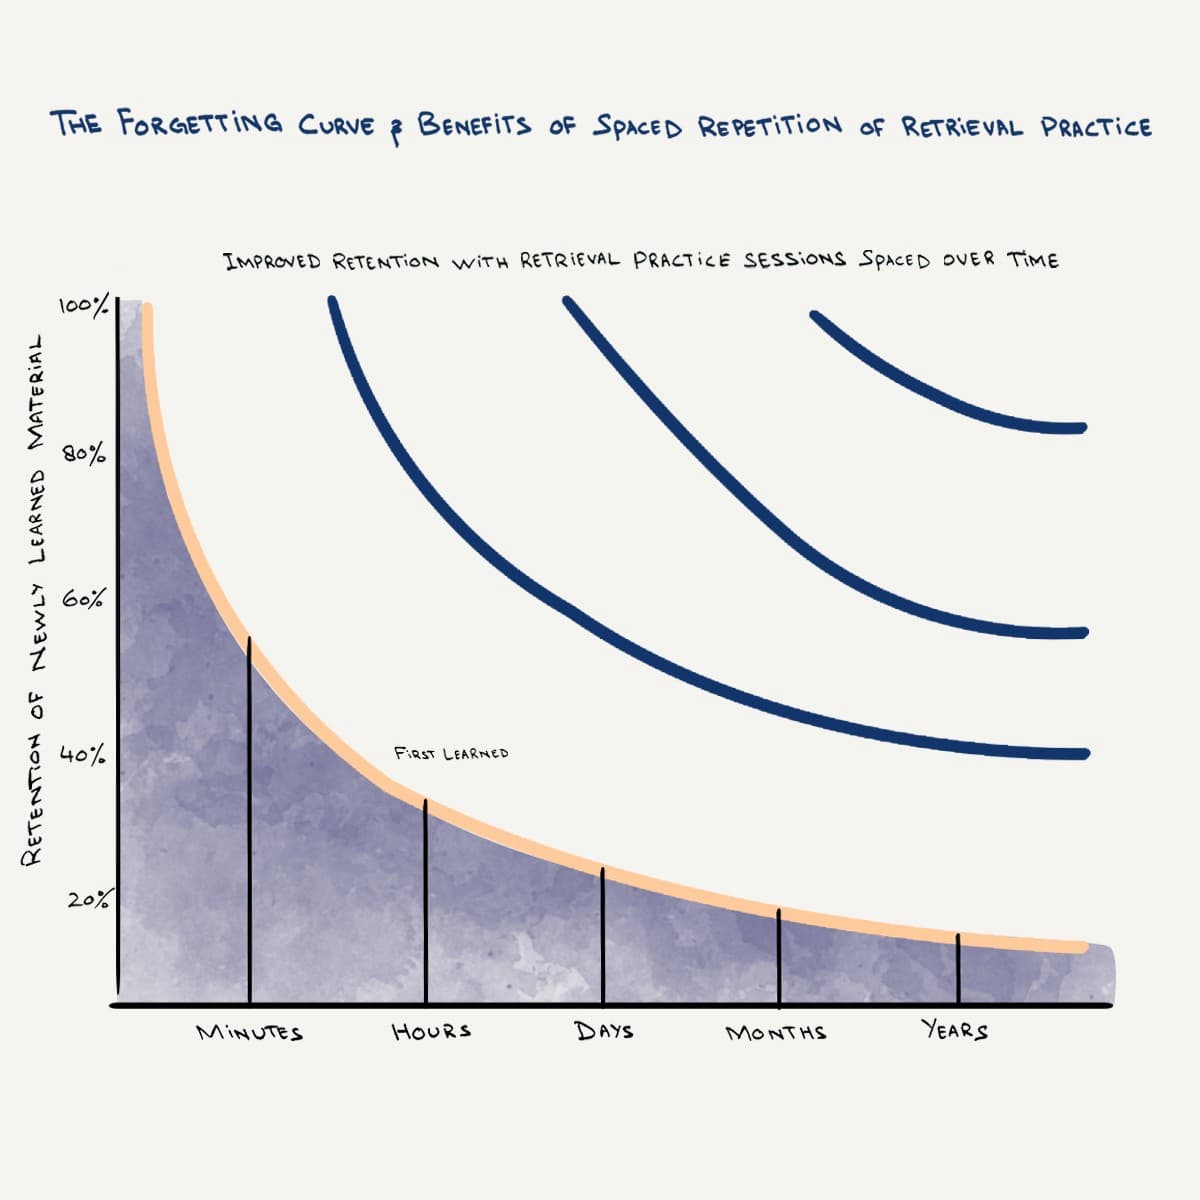 The forgetting curve and the effects of spaced retrieval practices.